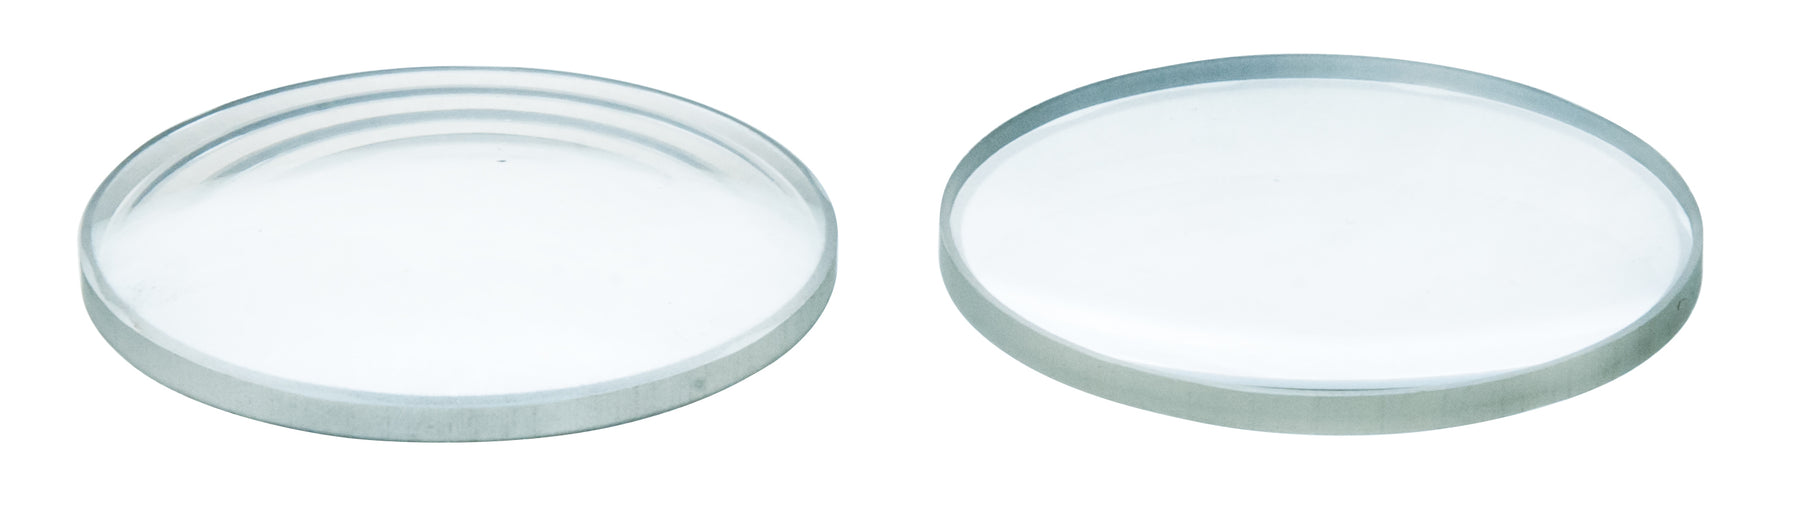 Meniscus Lenses Dia 50mm,Focal Length -3D